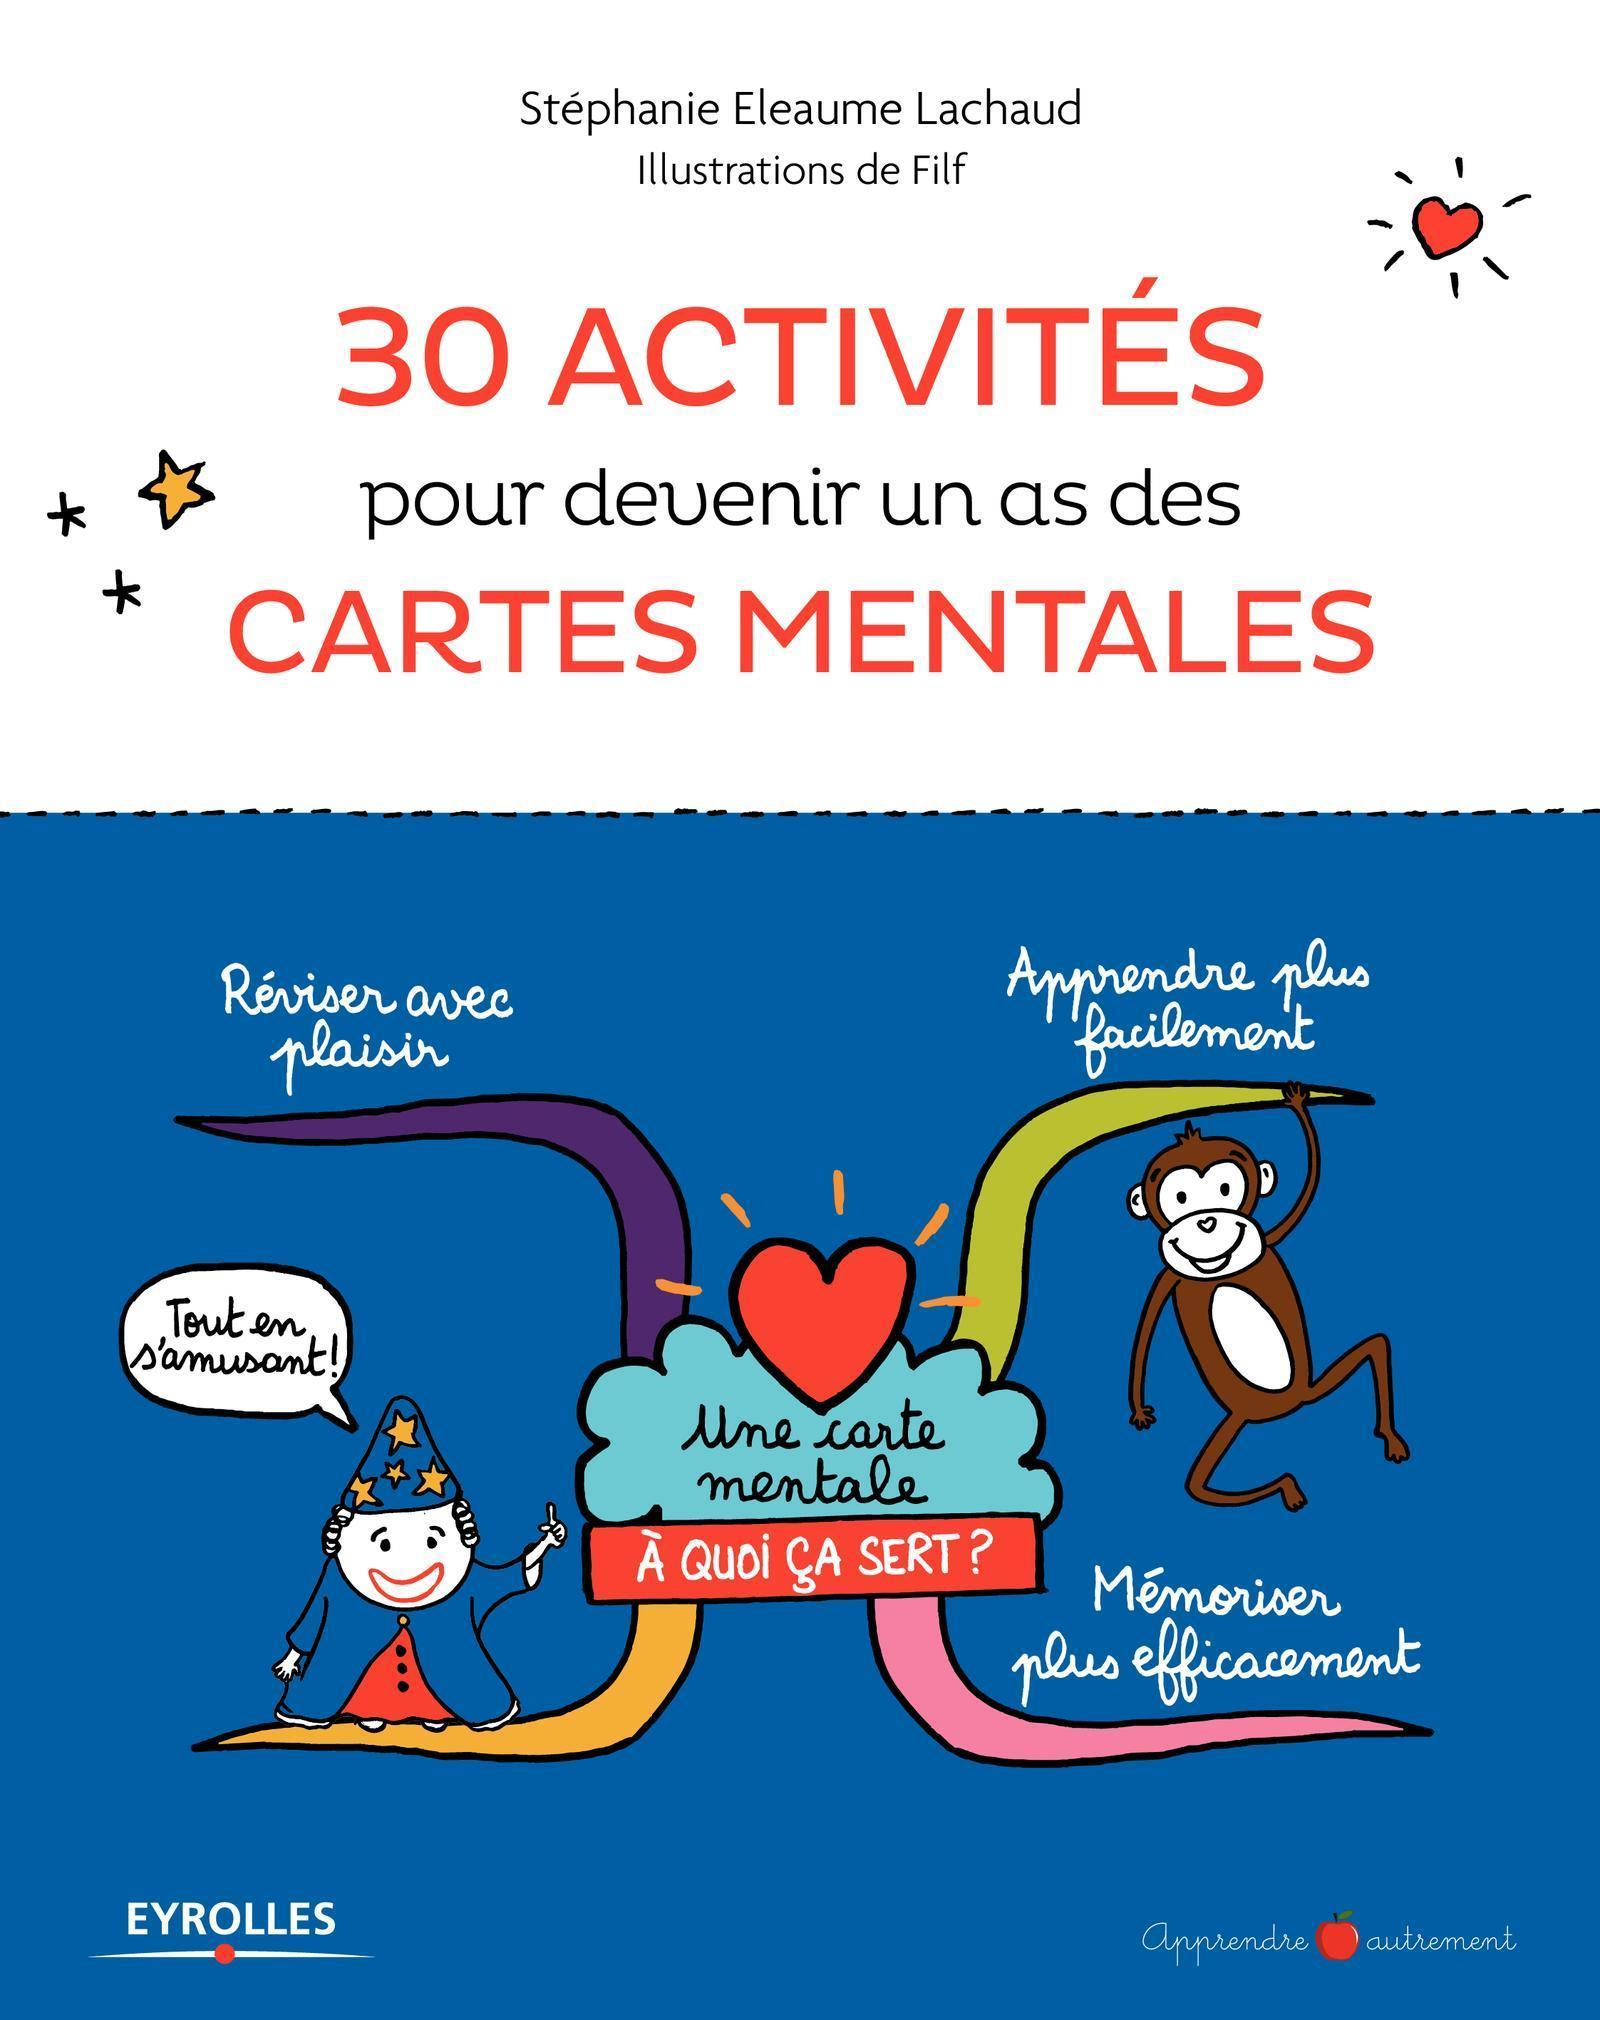 30 ACTIVITES POUR DEVENIR UN AS DES CARTES MENTALES